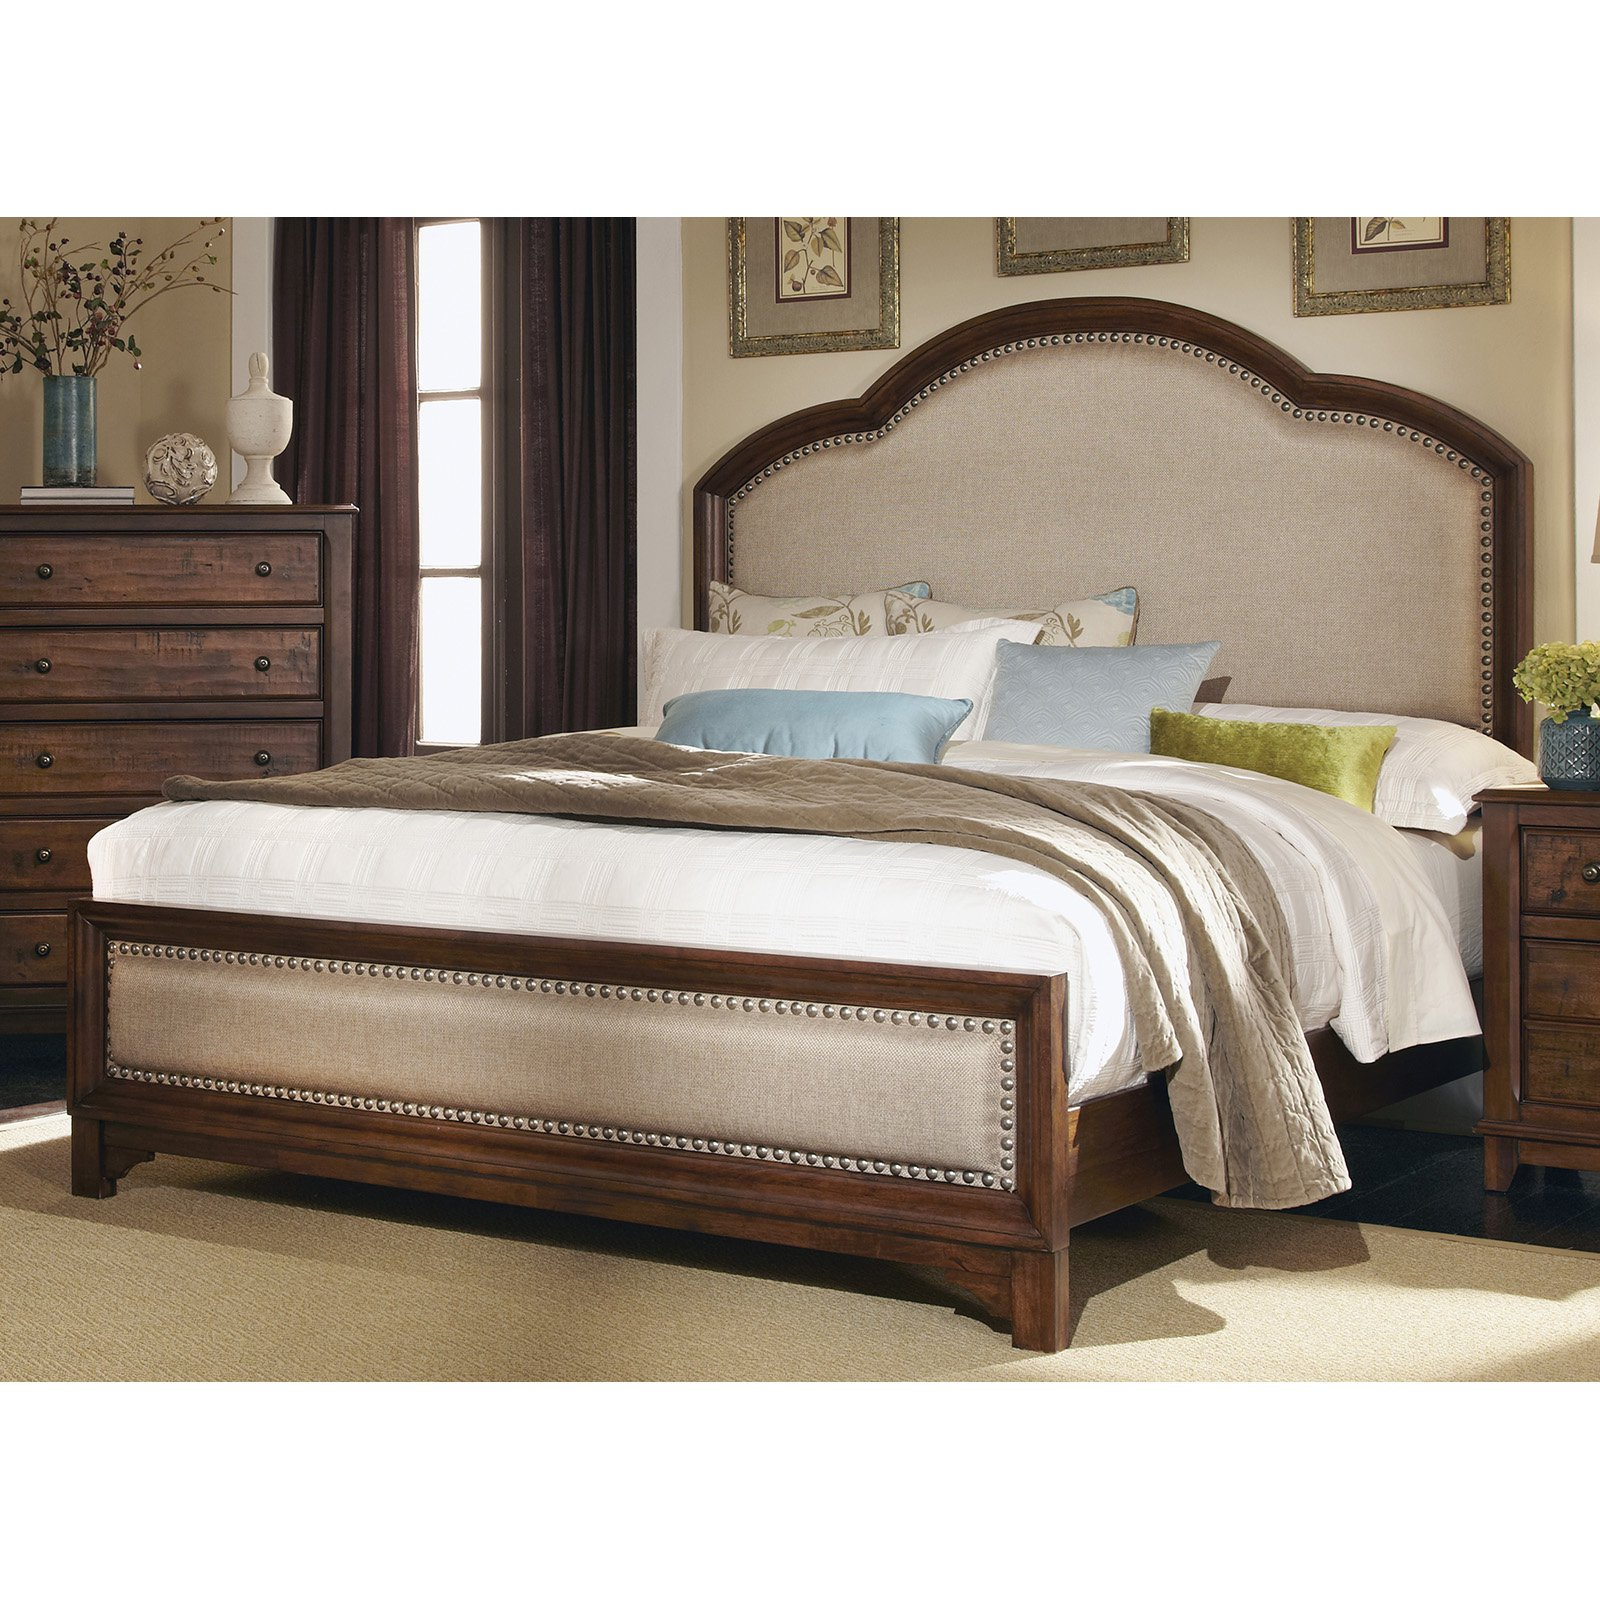 Coaster Furniture Laughton Upholstered Bed